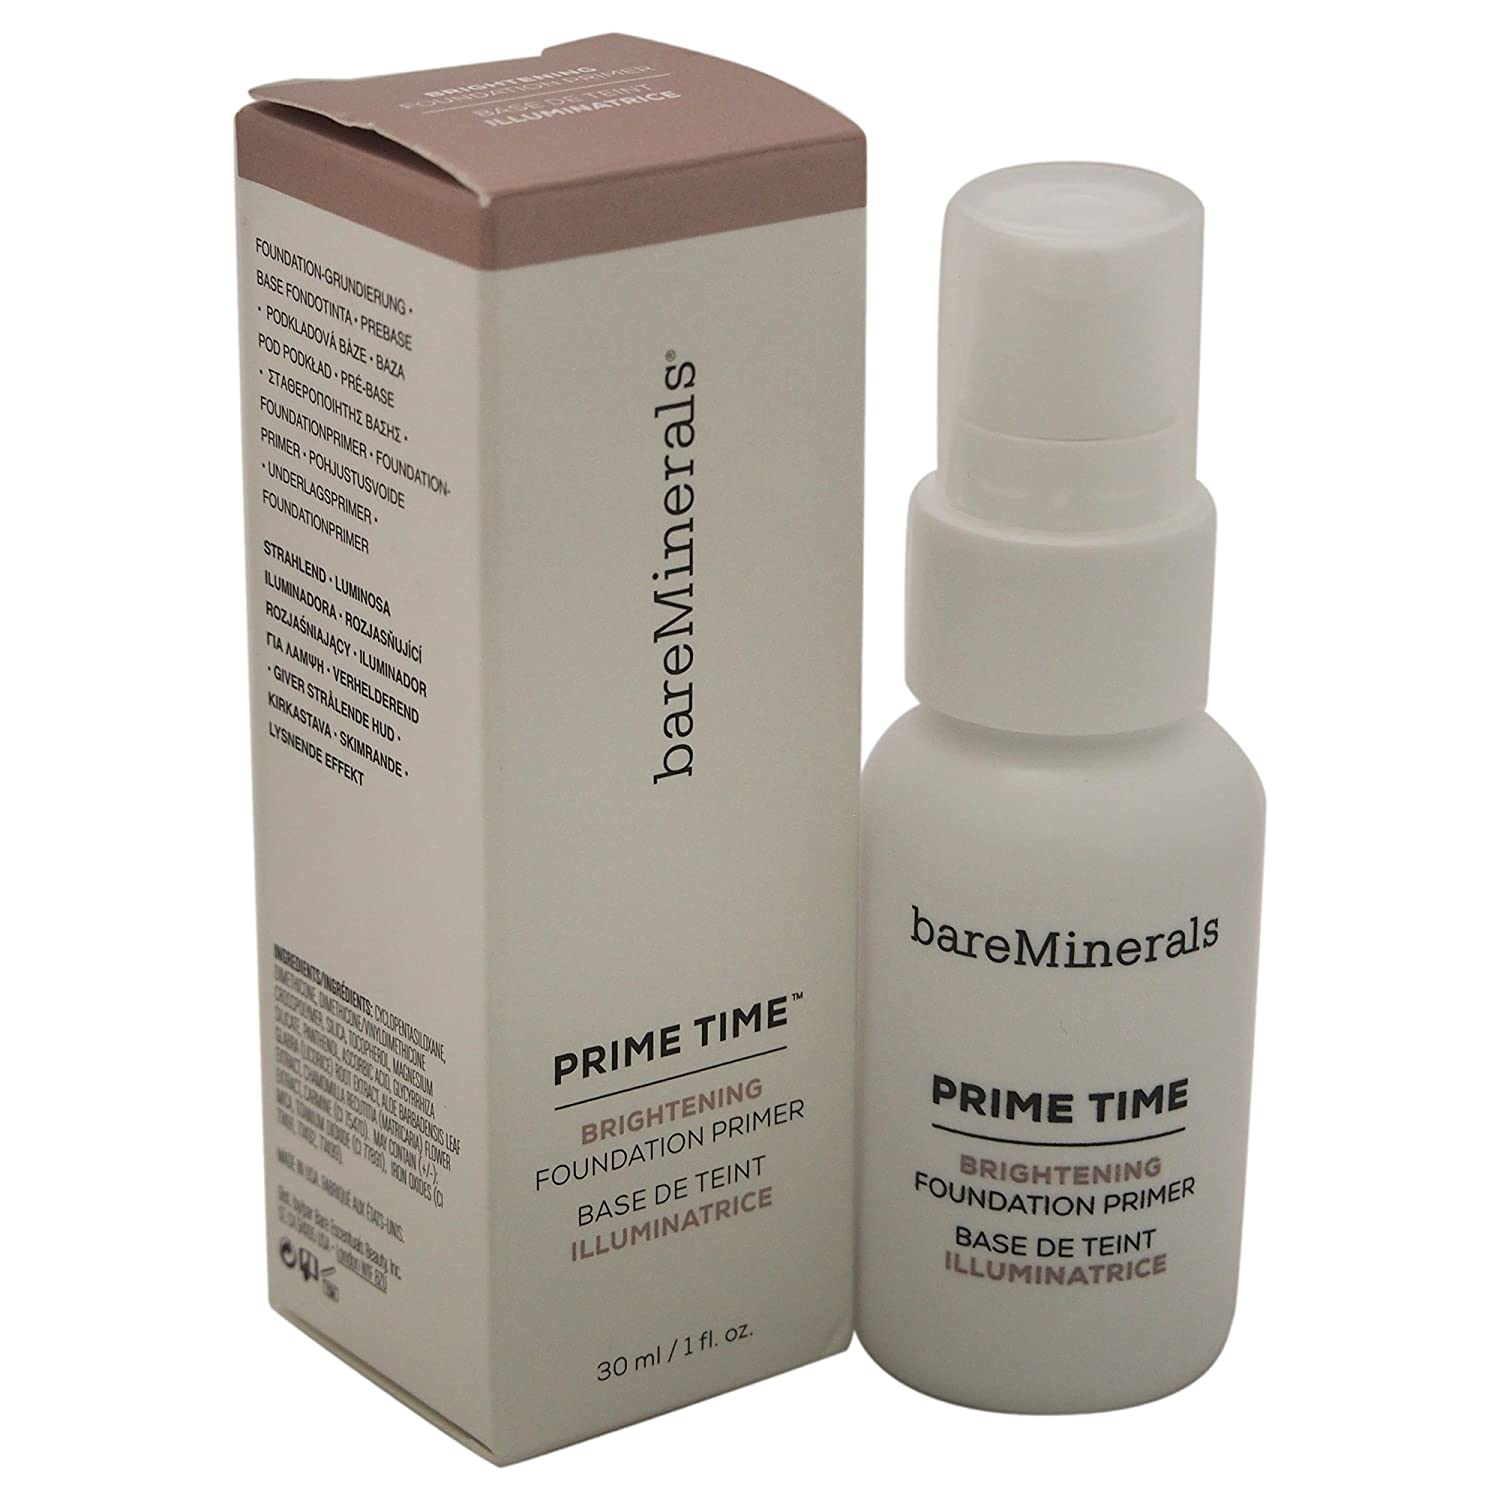 bareMinerals Prime Time Brightening Foundation Primer for Face, 1 Ounce Tjernlund Products Inc. 80477